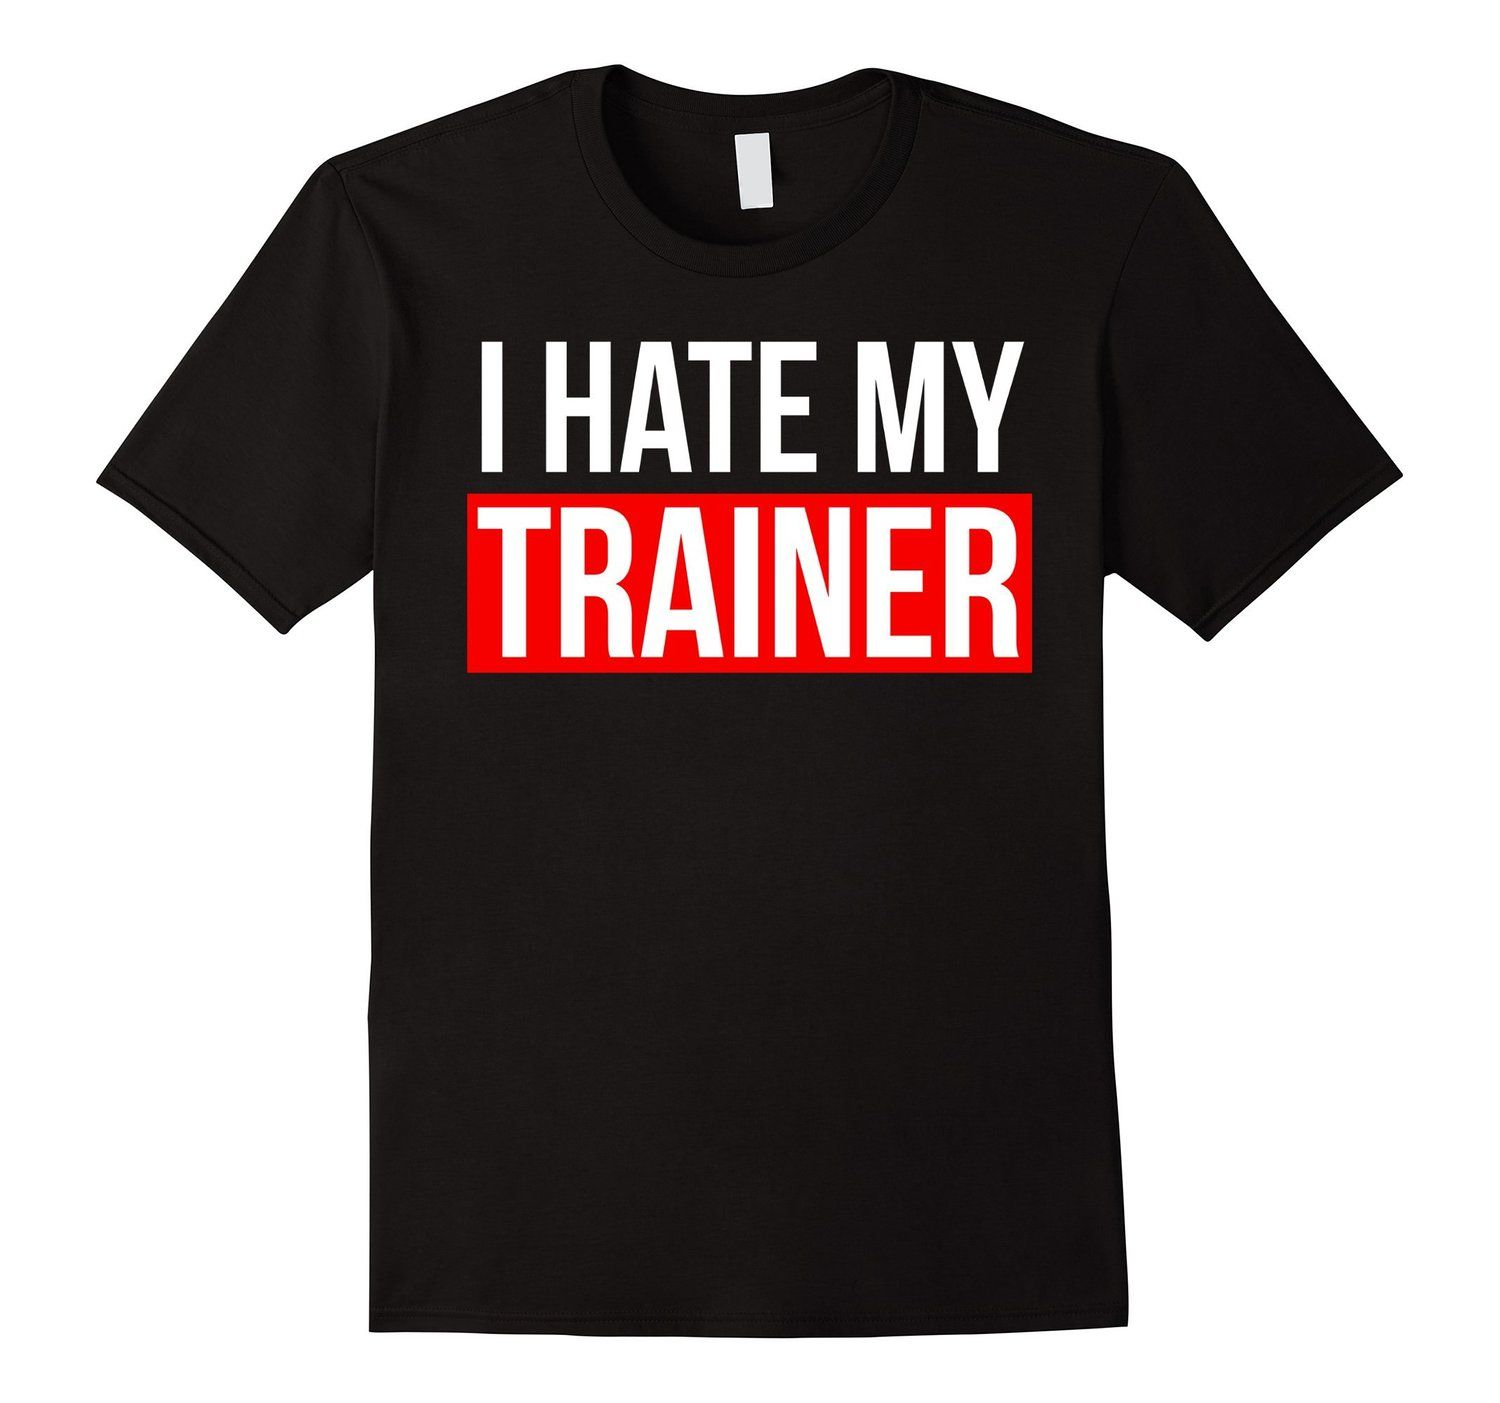 0e07608c9 Amazon.com: Workout T-shirt - I Hate My Trainer: Clothing | Workout ...